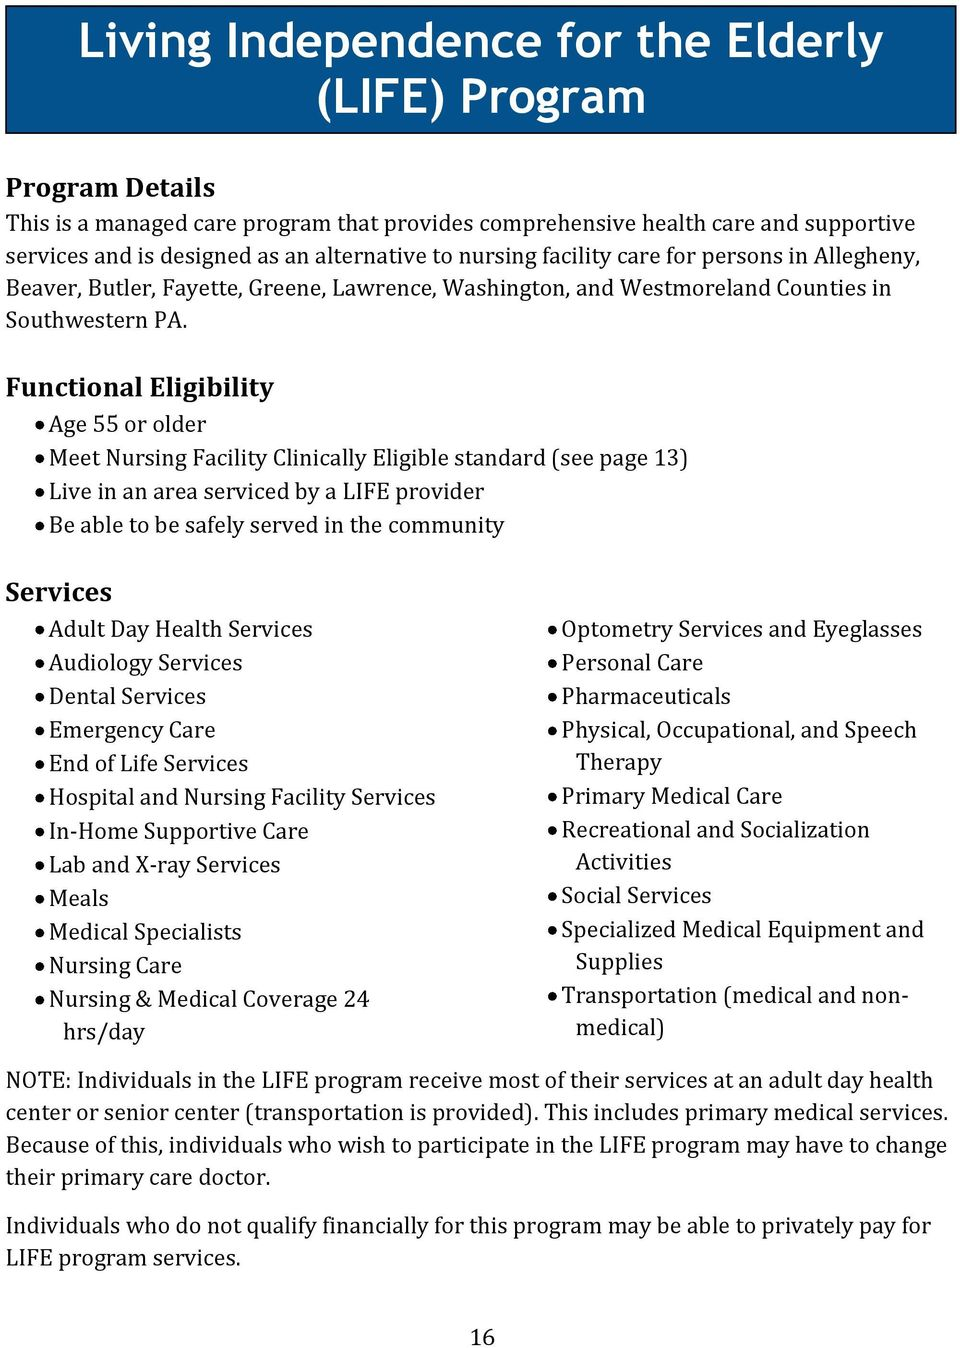 Functional Eligibility Age 55 or older Meet Nursing Facility Clinically Eligible standard (see page 13) Live in an area serviced by a LIFE provider Be able to be safely served in the community